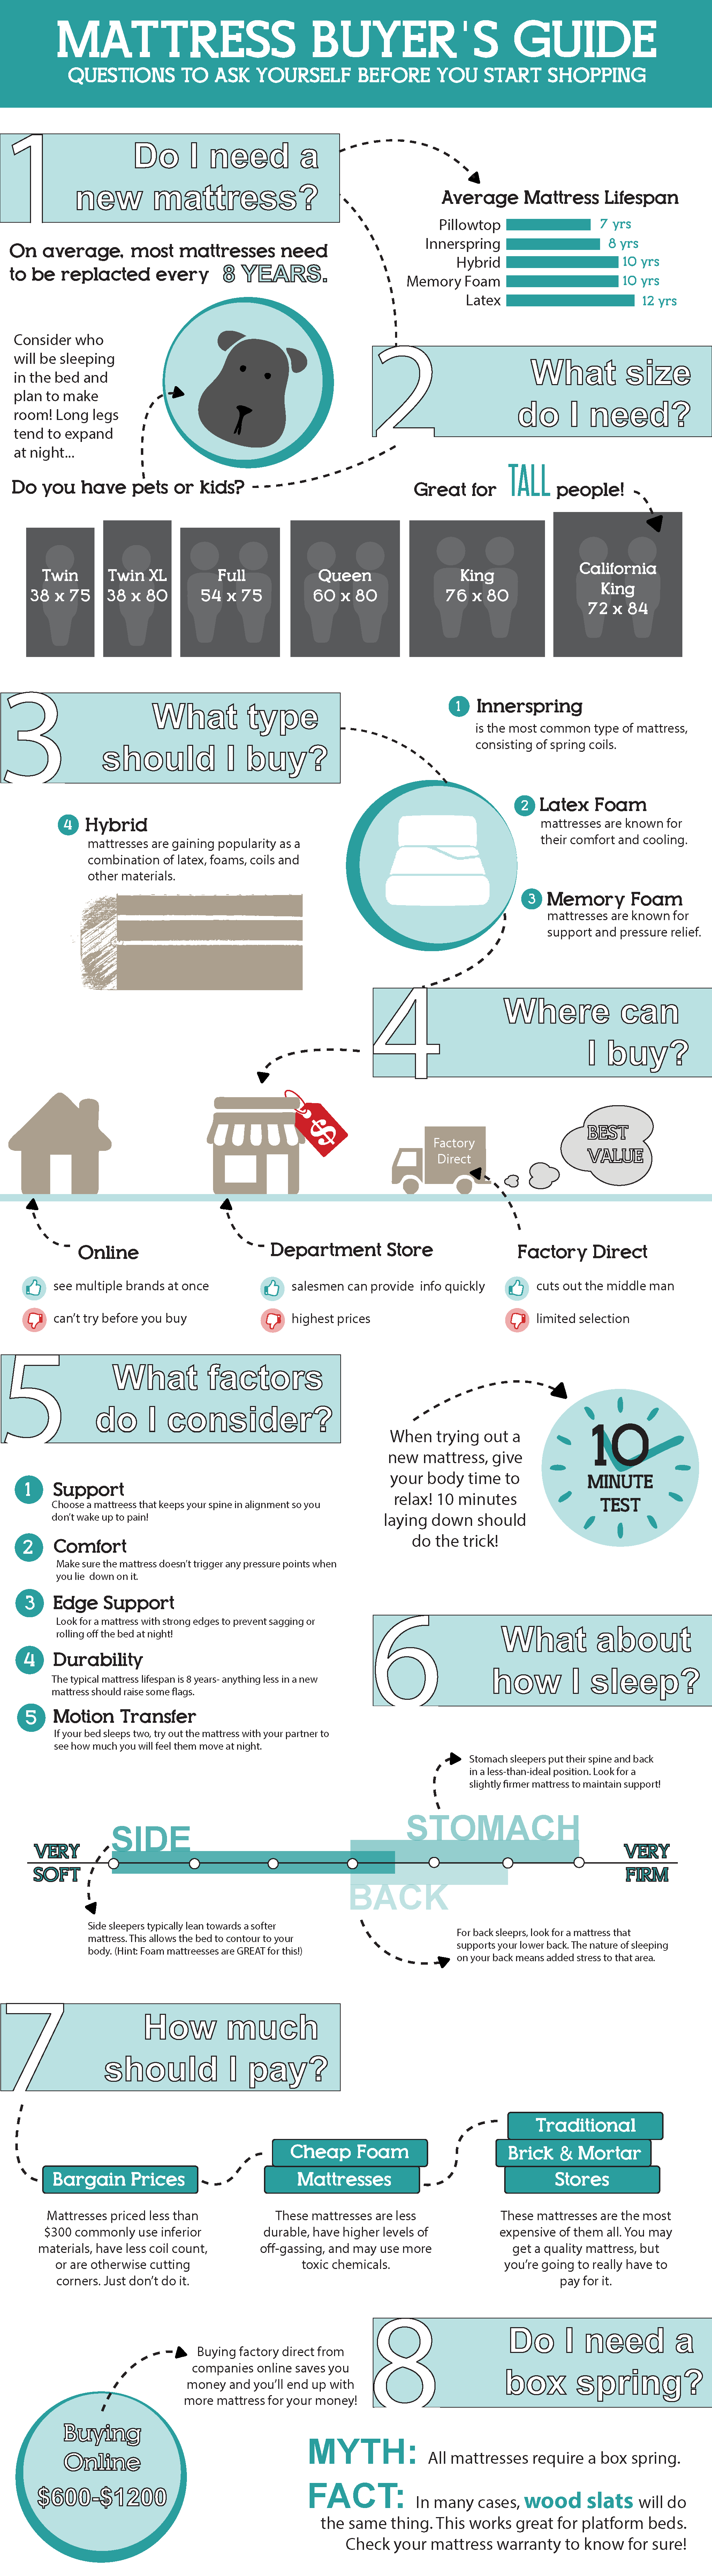 Mattress buying guide sleepopolis for When to buy a mattress